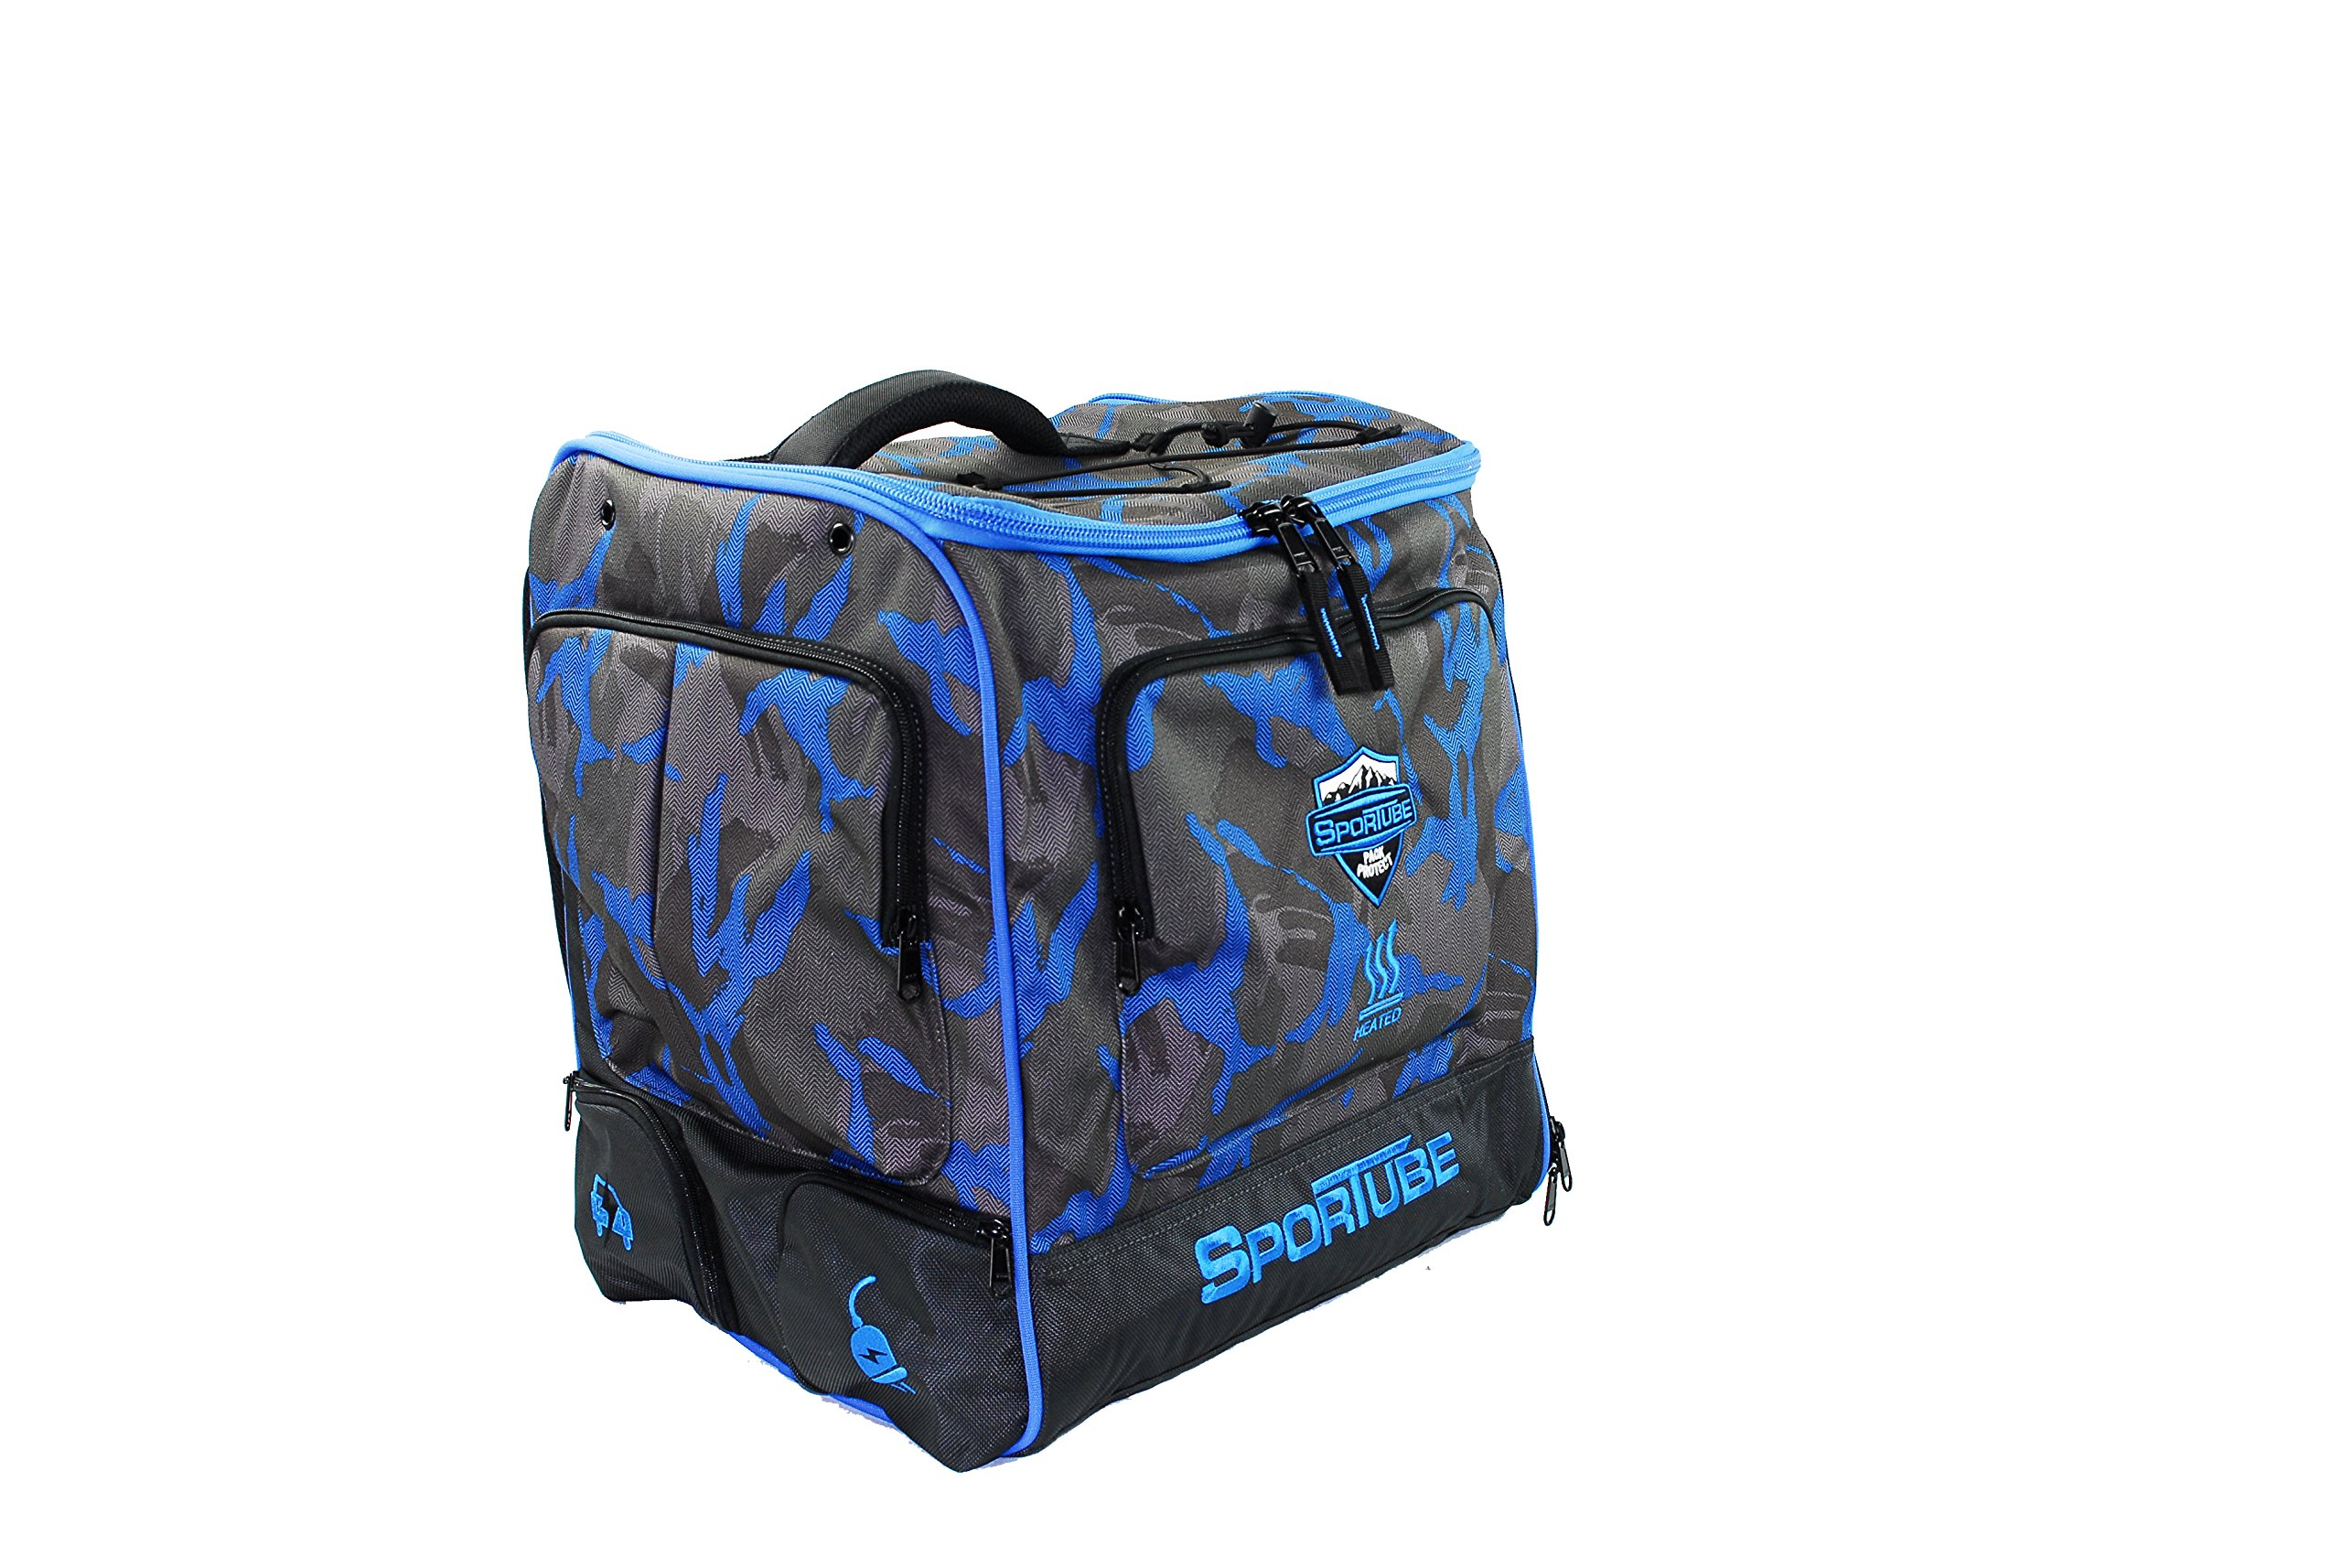 Sportube Toaster Elite Heated Boot Bag, Camo by Sportube